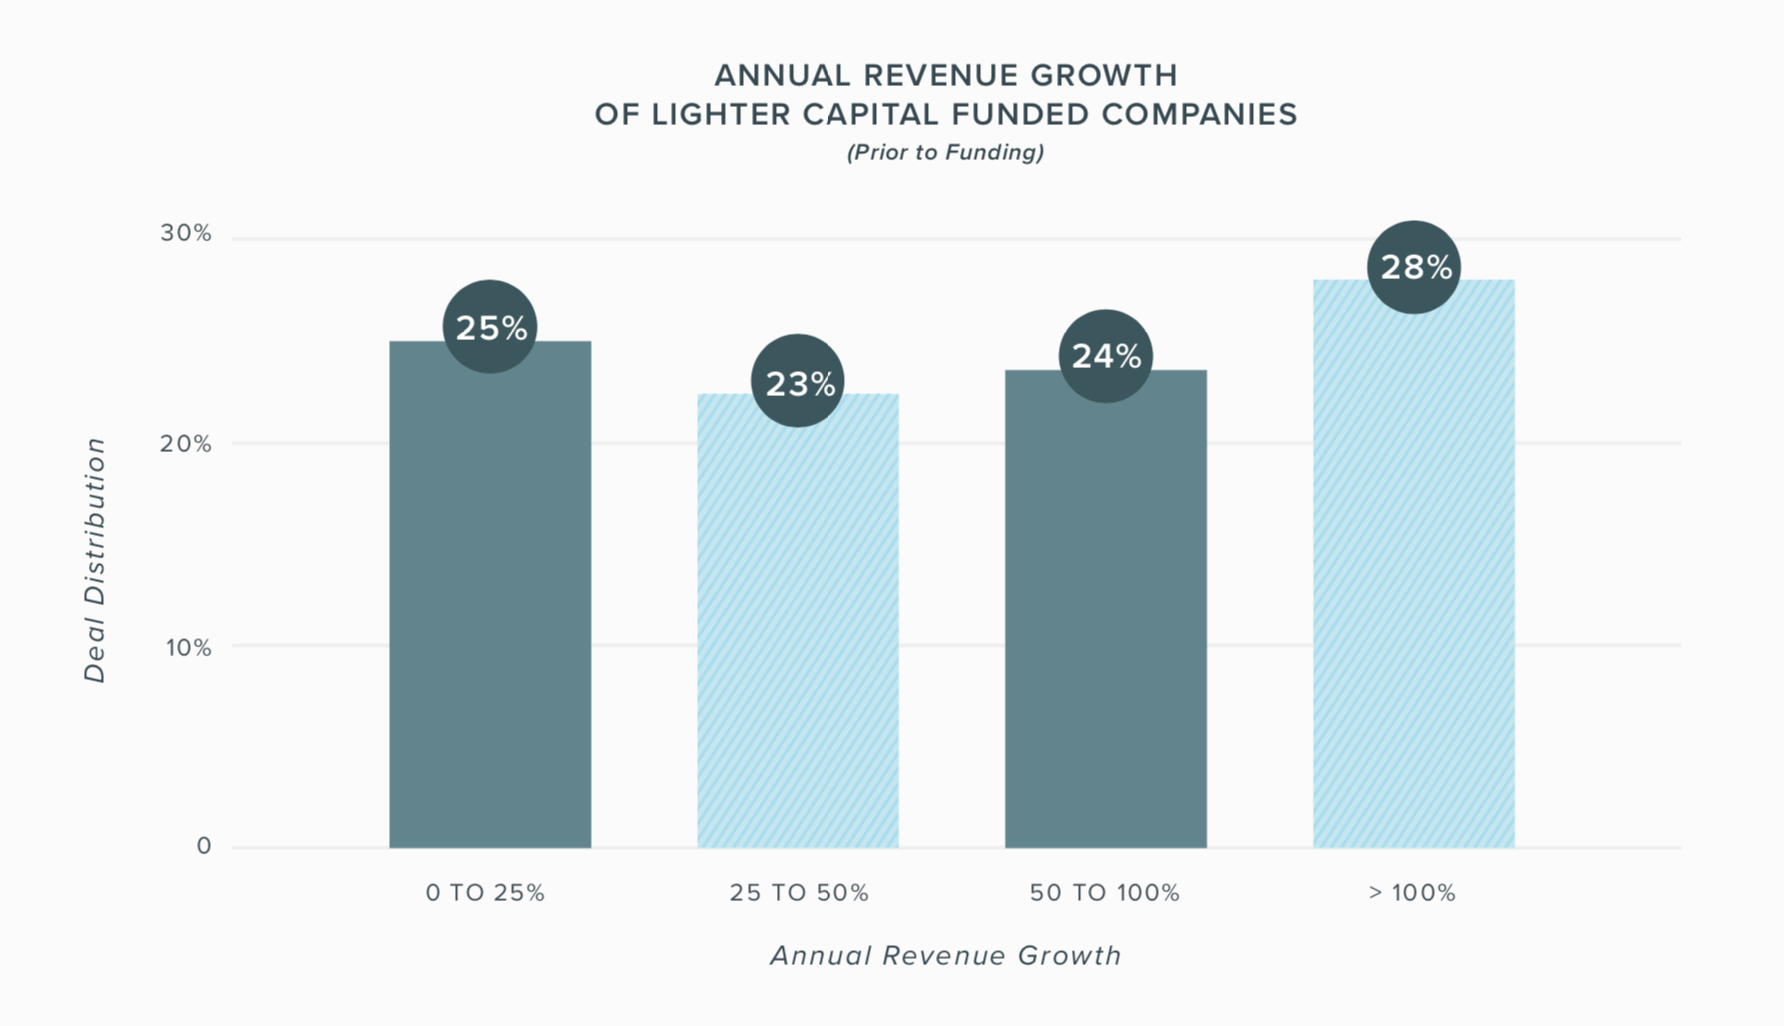 Annual Revenue Growth of Lighter Capital Funded Companies Pre-Funding